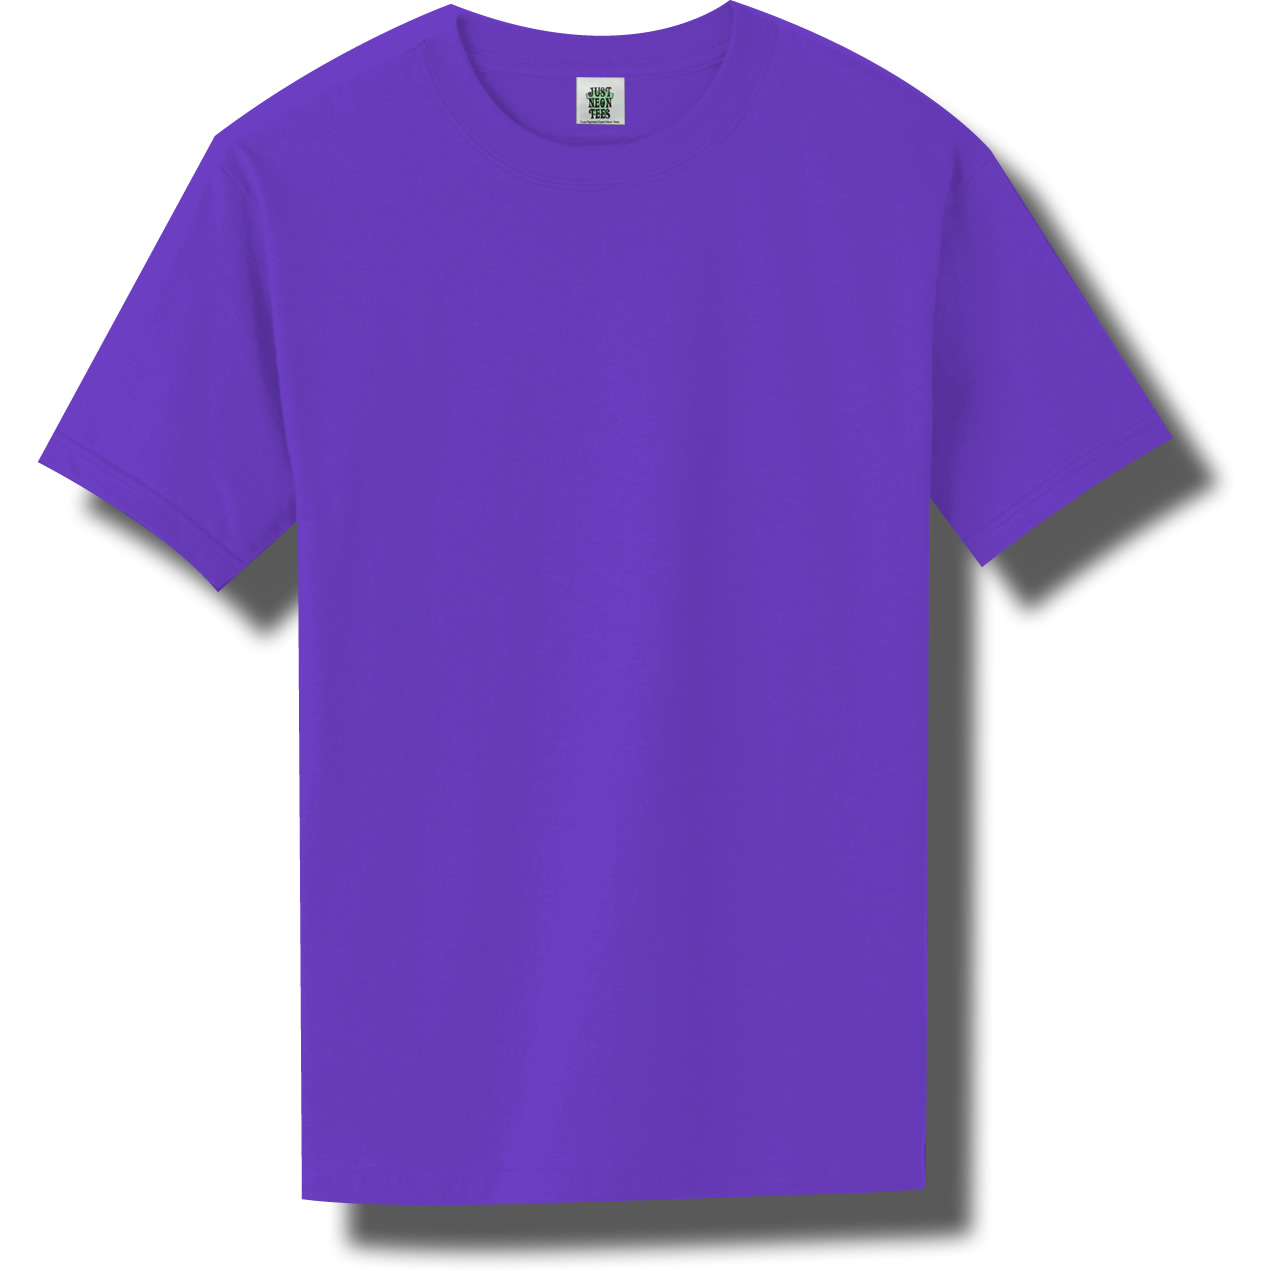 neon purple introduced as an exciting new color of t